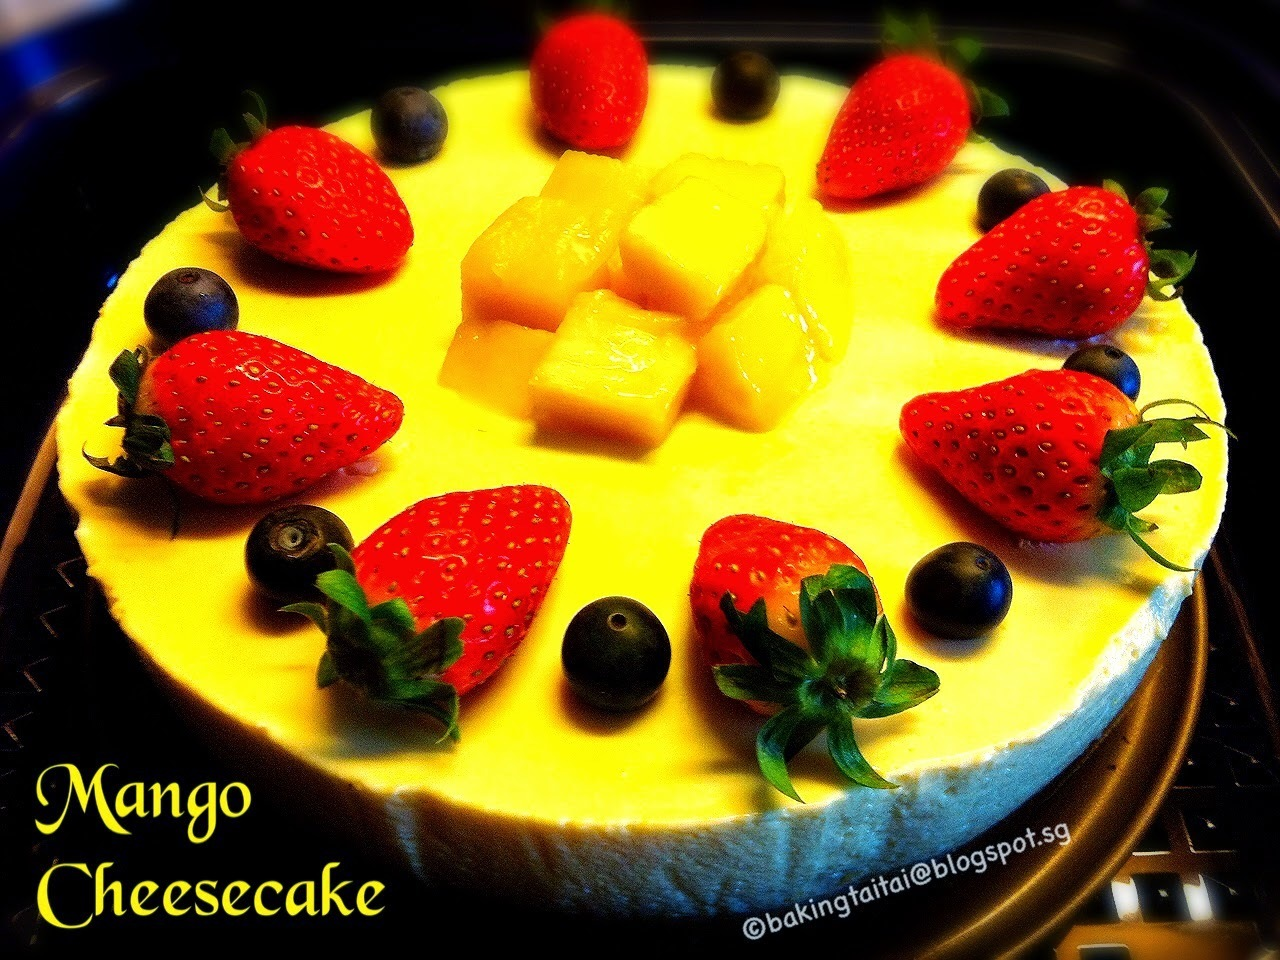 Healthy Non-Bake Mango Cheesecake 免烤芒果芝士蛋糕健康食谱 (中英食谱)